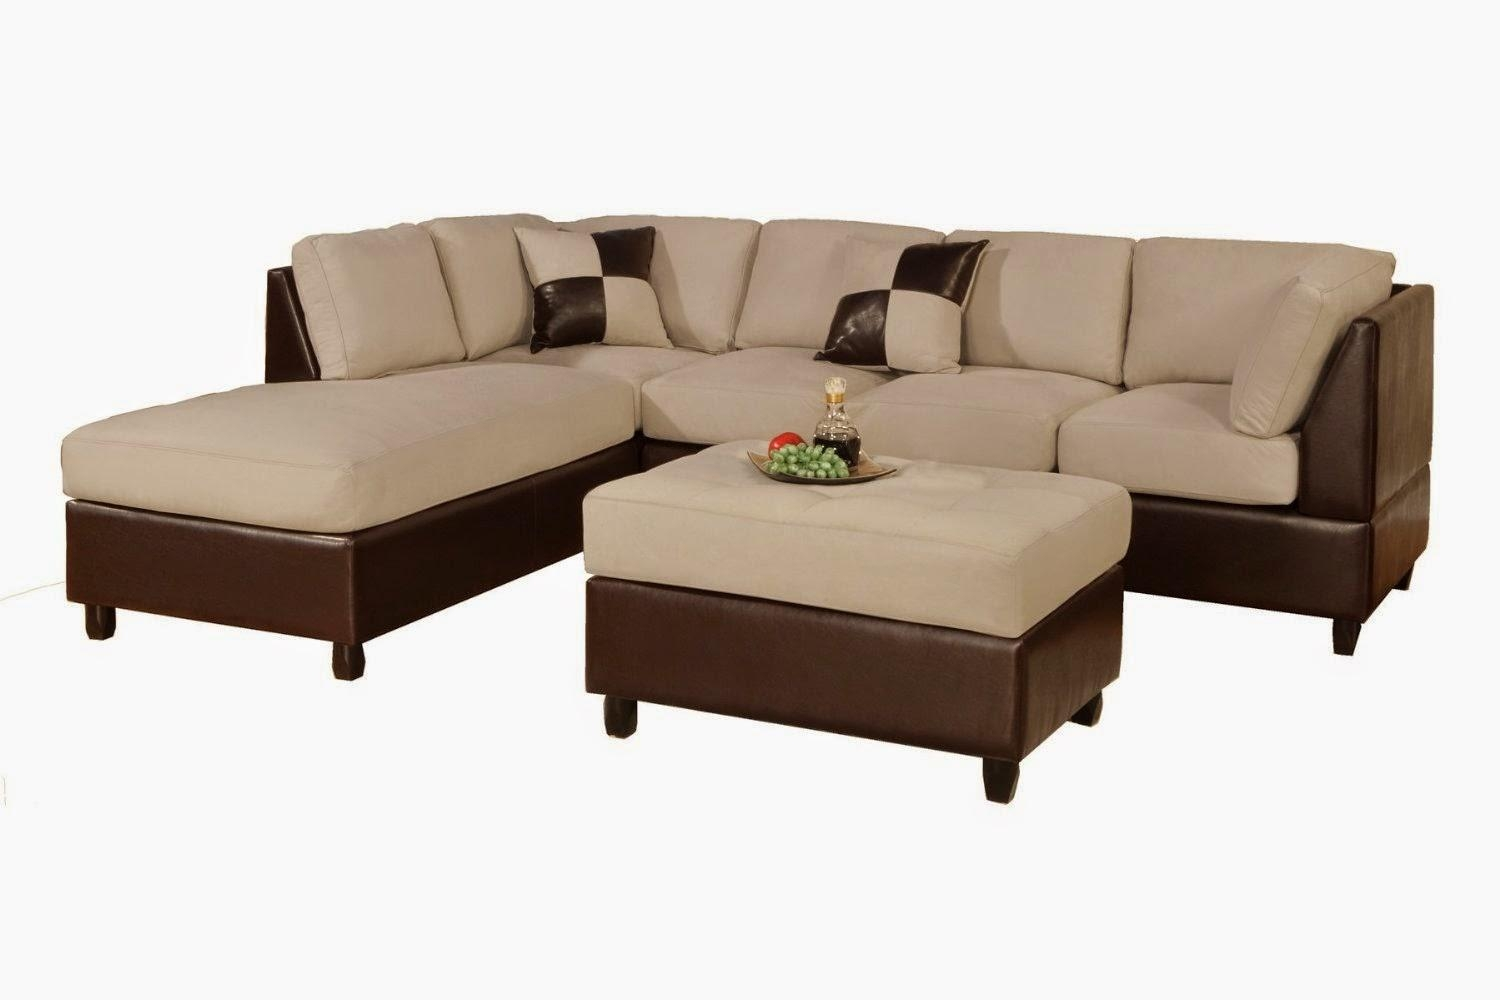 L Shaped Leather Sofa And Fashionable Corner Sectional L Shape Within Leather L Shaped Sectional Sofas (View 15 of 20)